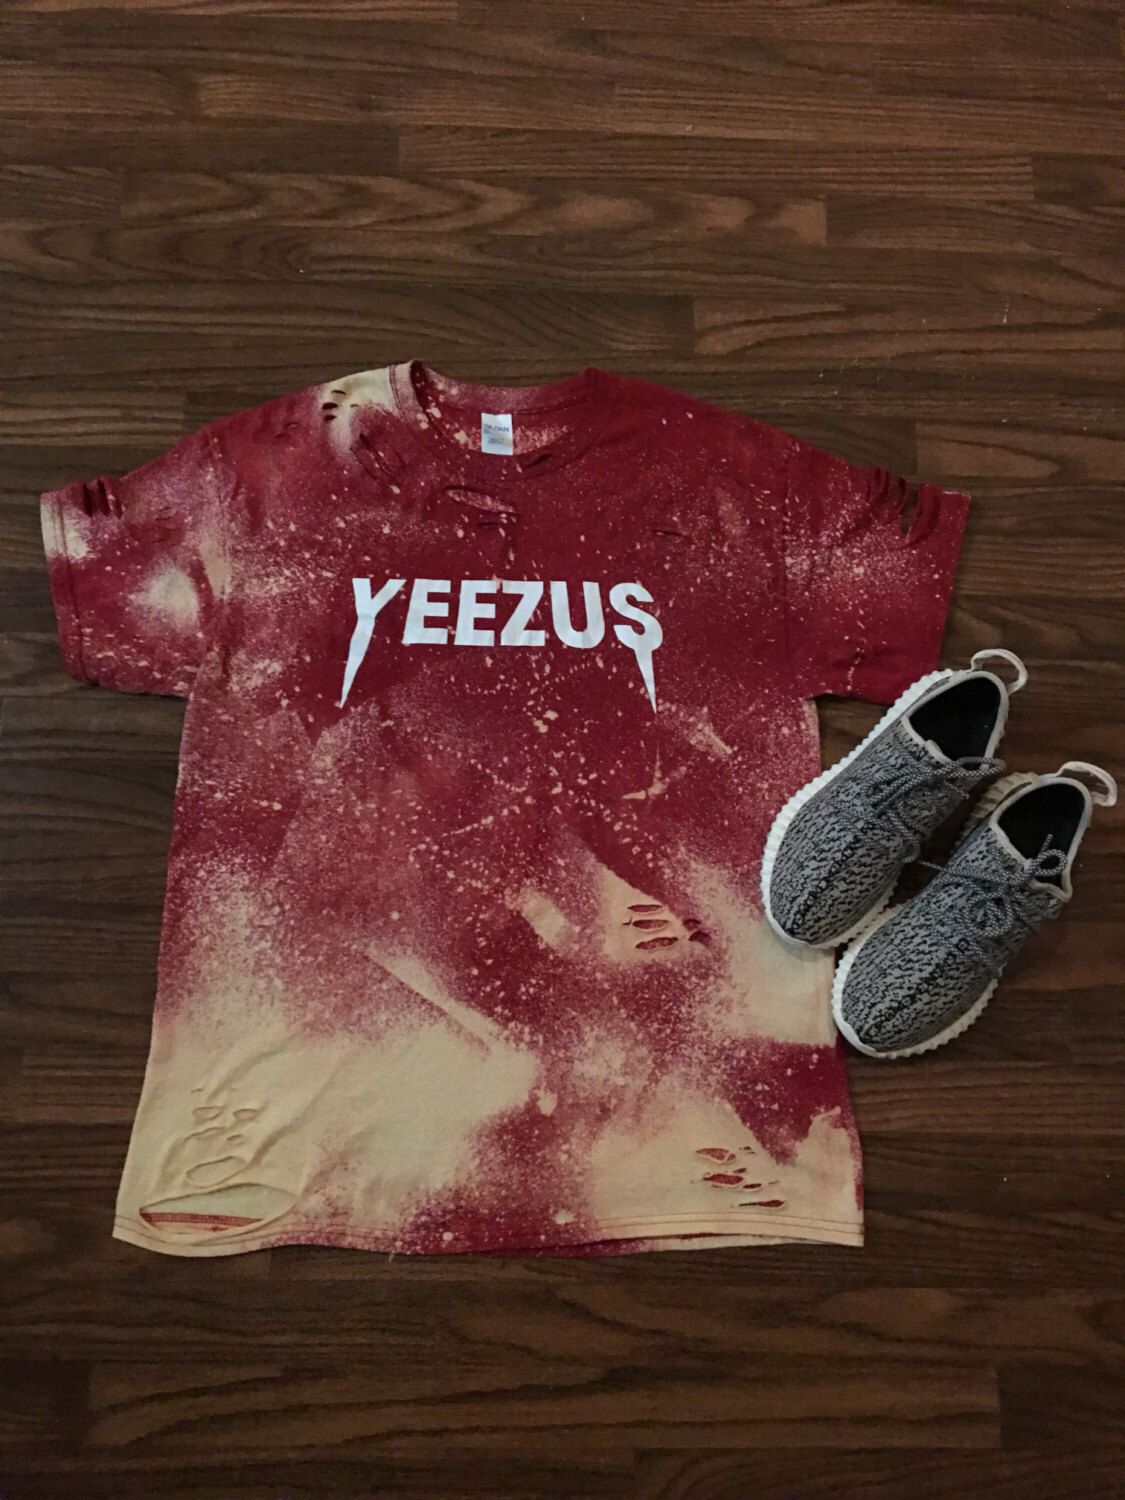 0bed77cbefc Kanye West Yeezus Tour Concert Merch Custom Bleached T Shirt Yeezy I Feel  like Pablo The